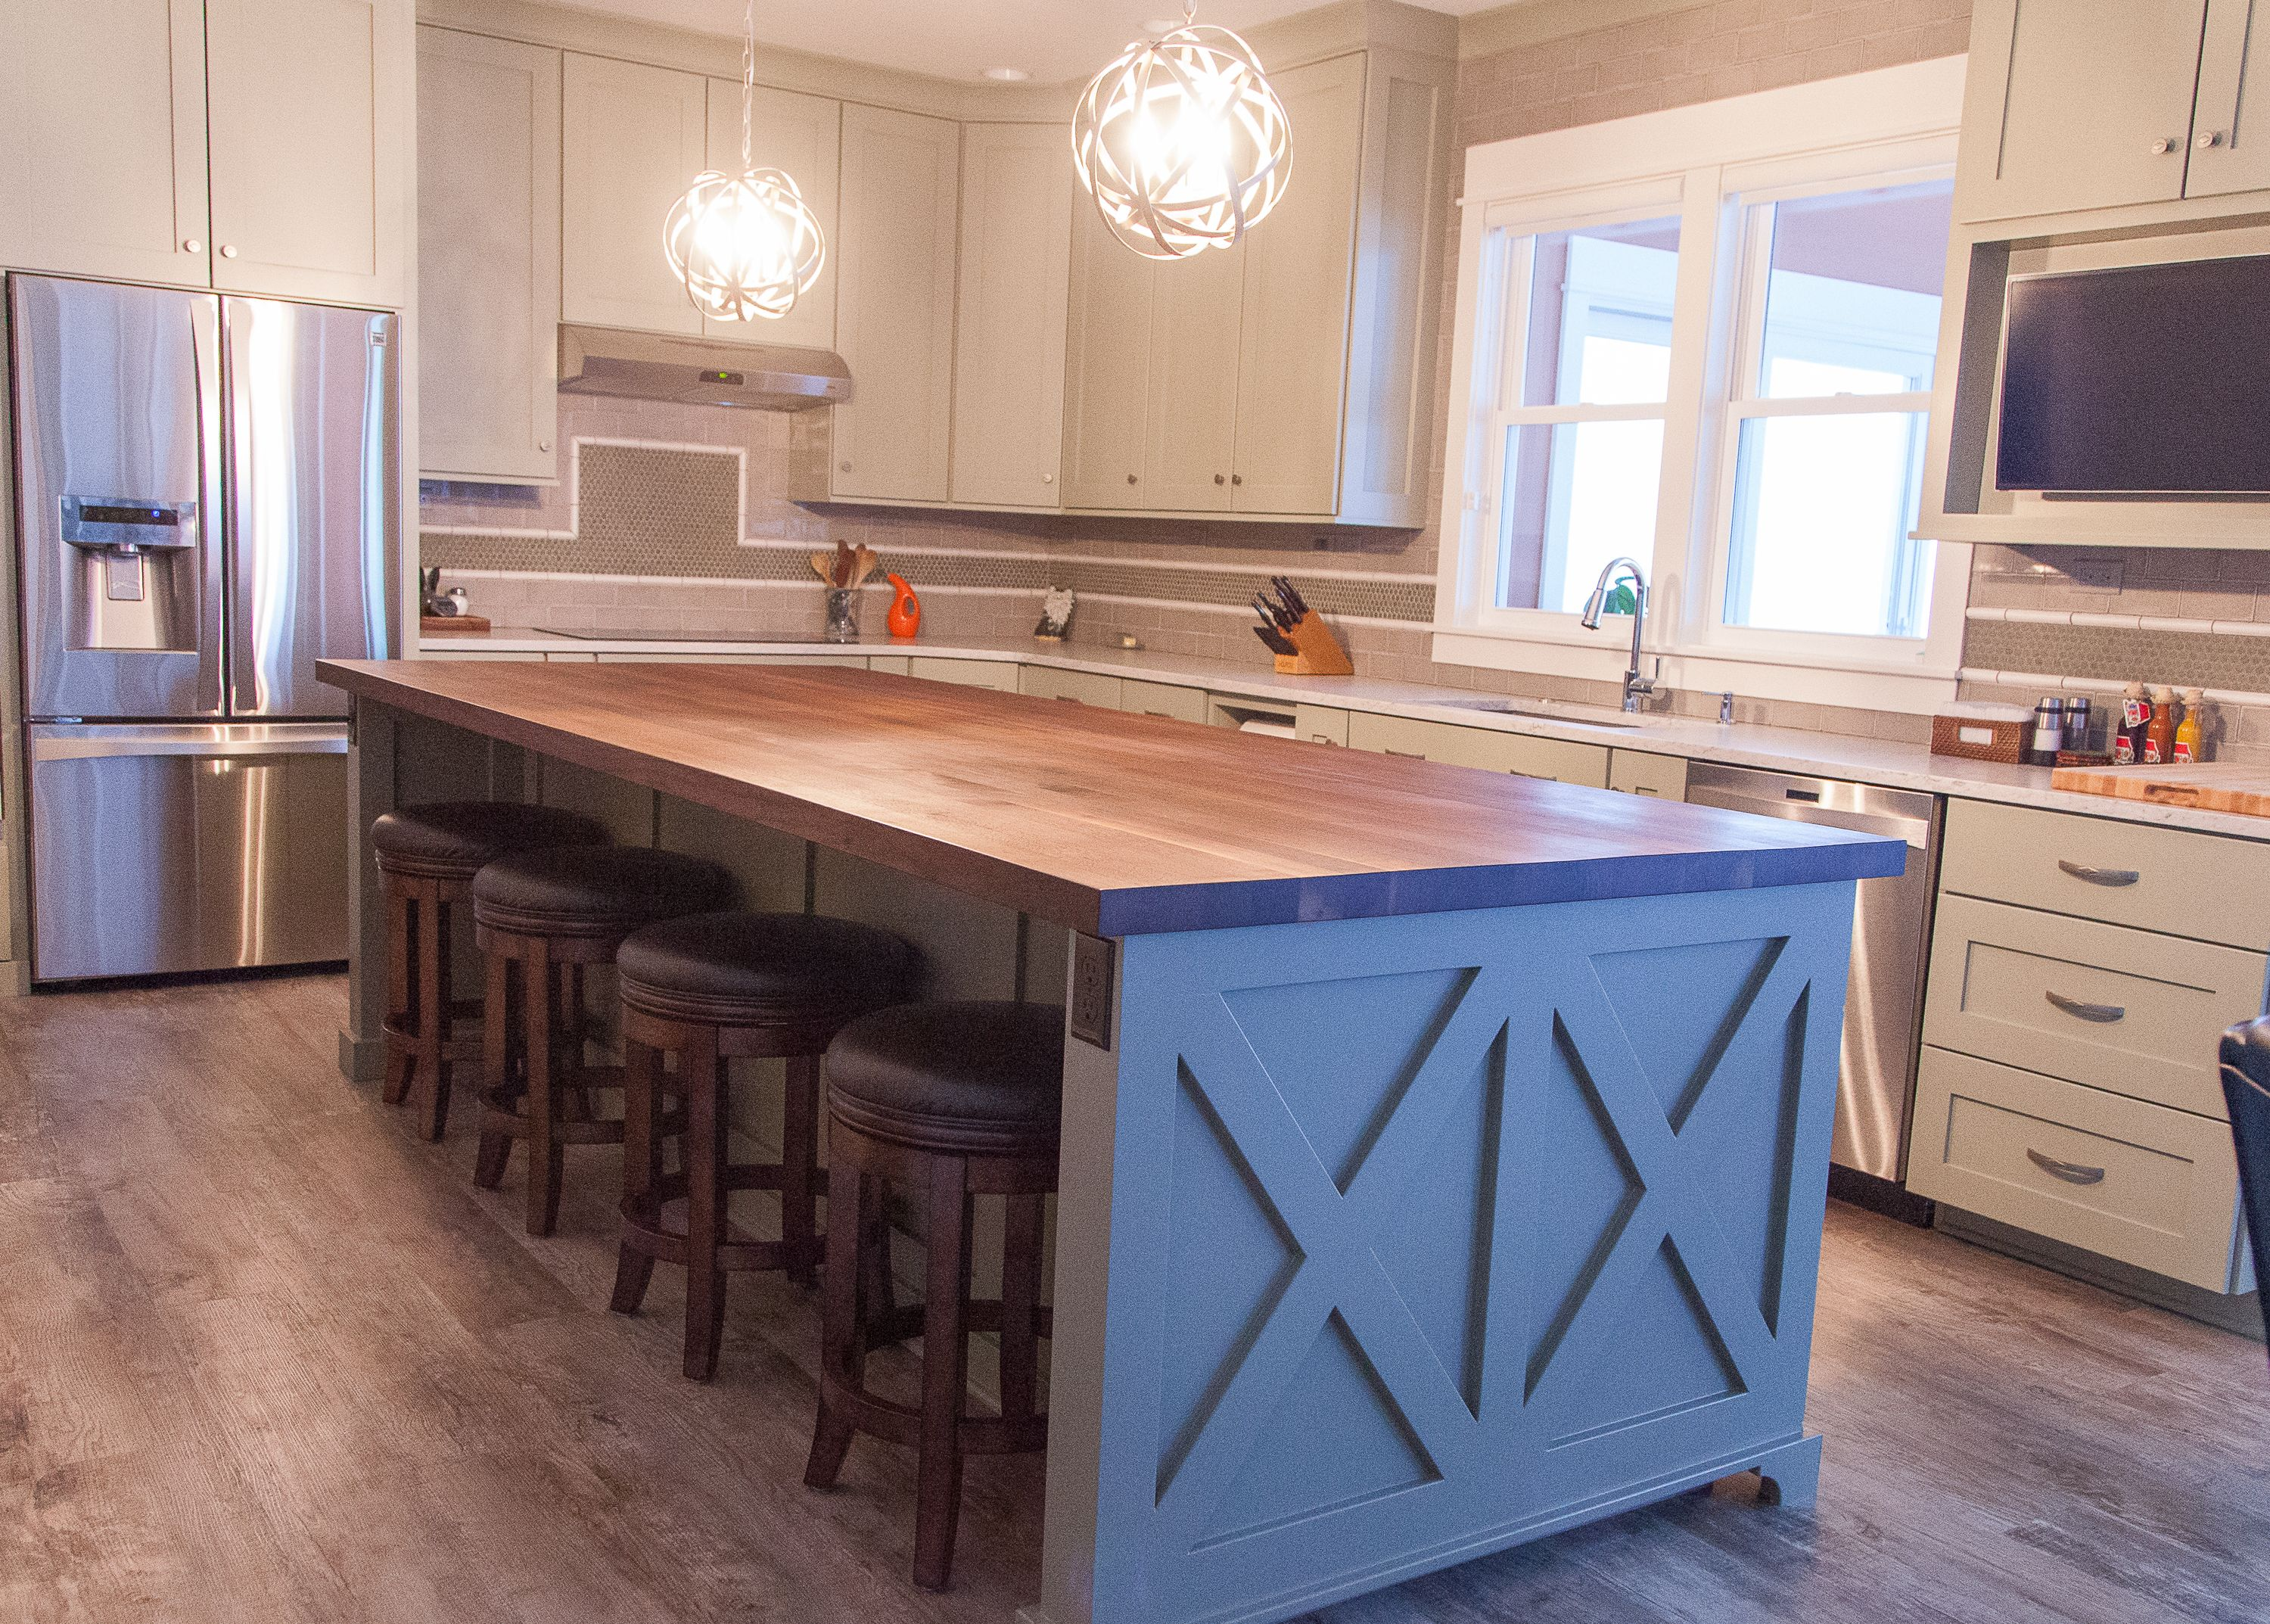 Uncategorized Kitchen Island With Butcher Block Top best 25 butcher block island ideas on pinterest farmhouse chic sleek walnut countertop barn wood kitchen stainless steel